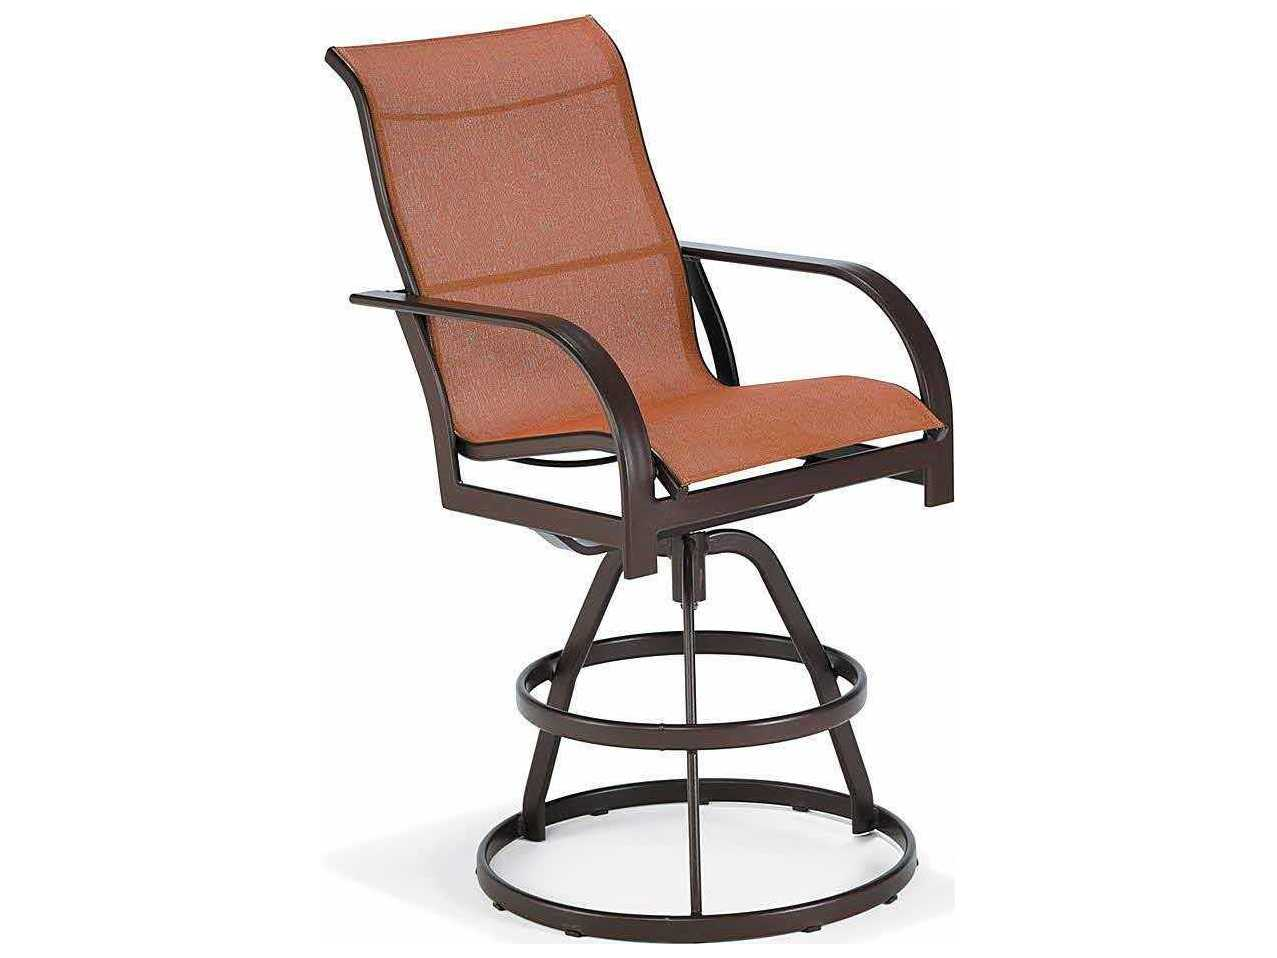 Image of: Winston Key West Sling Aluminum Arm Swivel Bar Stool Wsm8013r